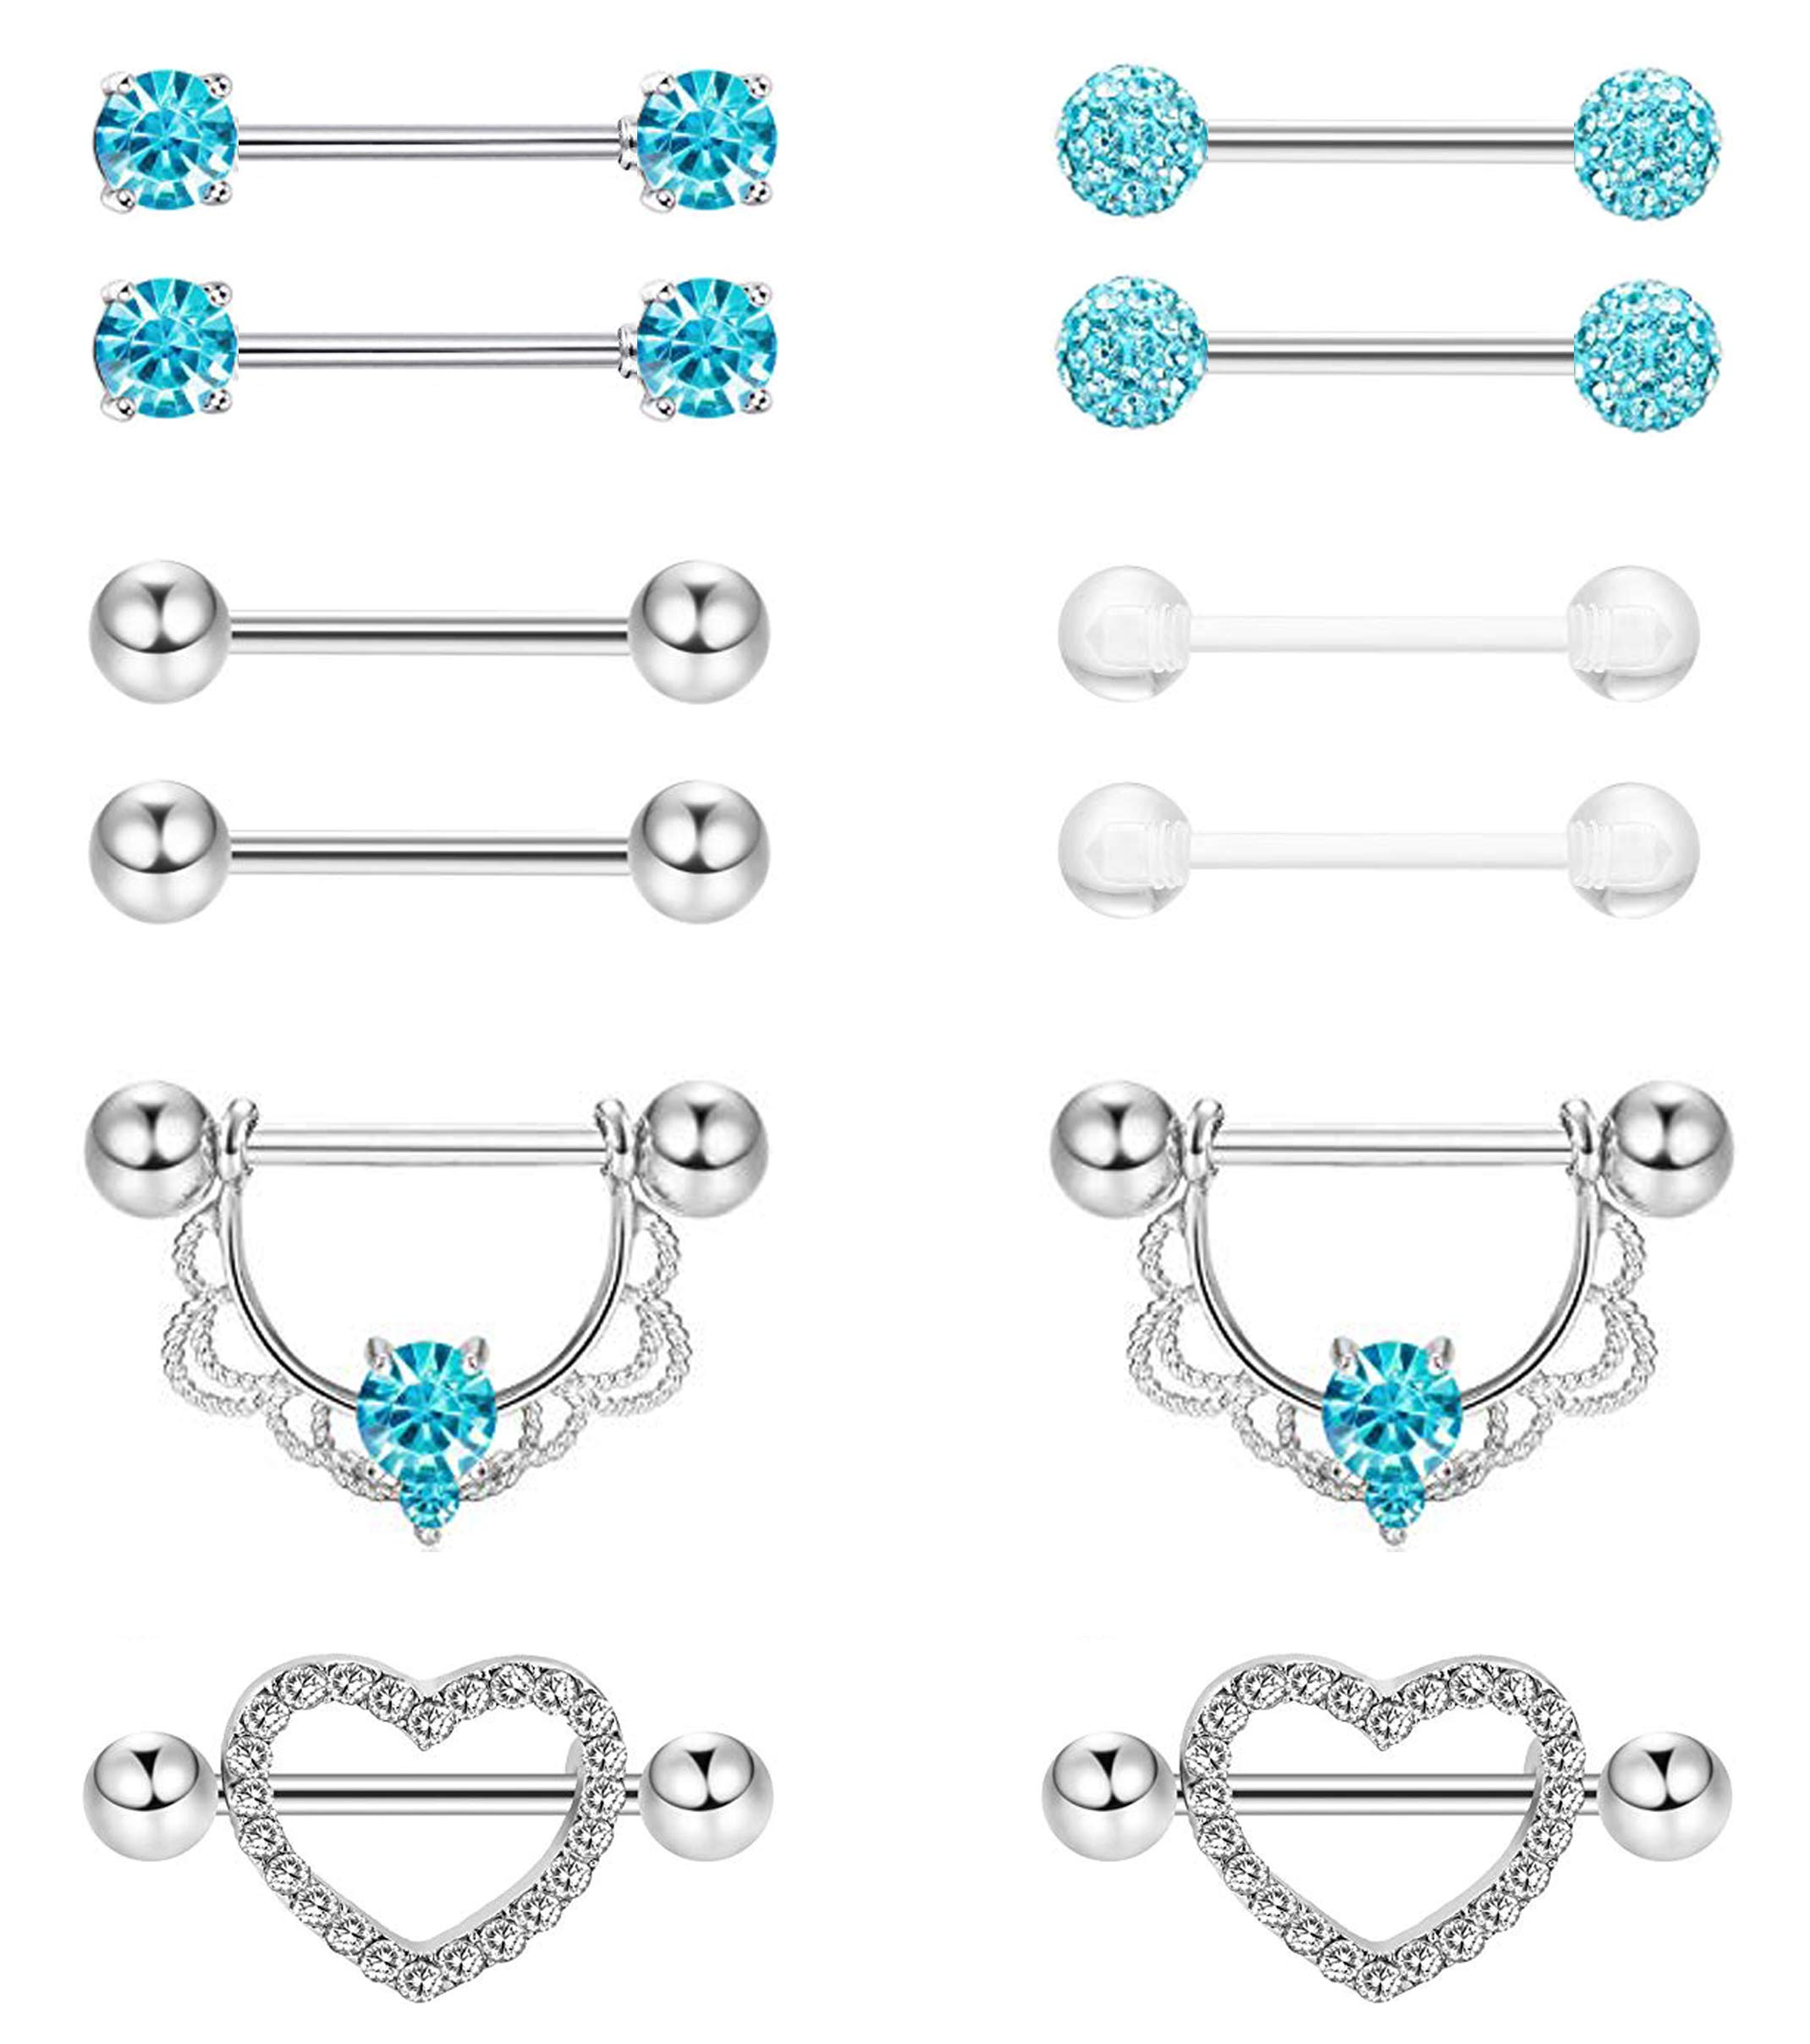 Masedy 6 Pairs 14G 316L Stainless Steel Nipplerings Nipple Tongue Rings Women Girls CZ Barbell Body Piercing Jewelry Blue by Masedy